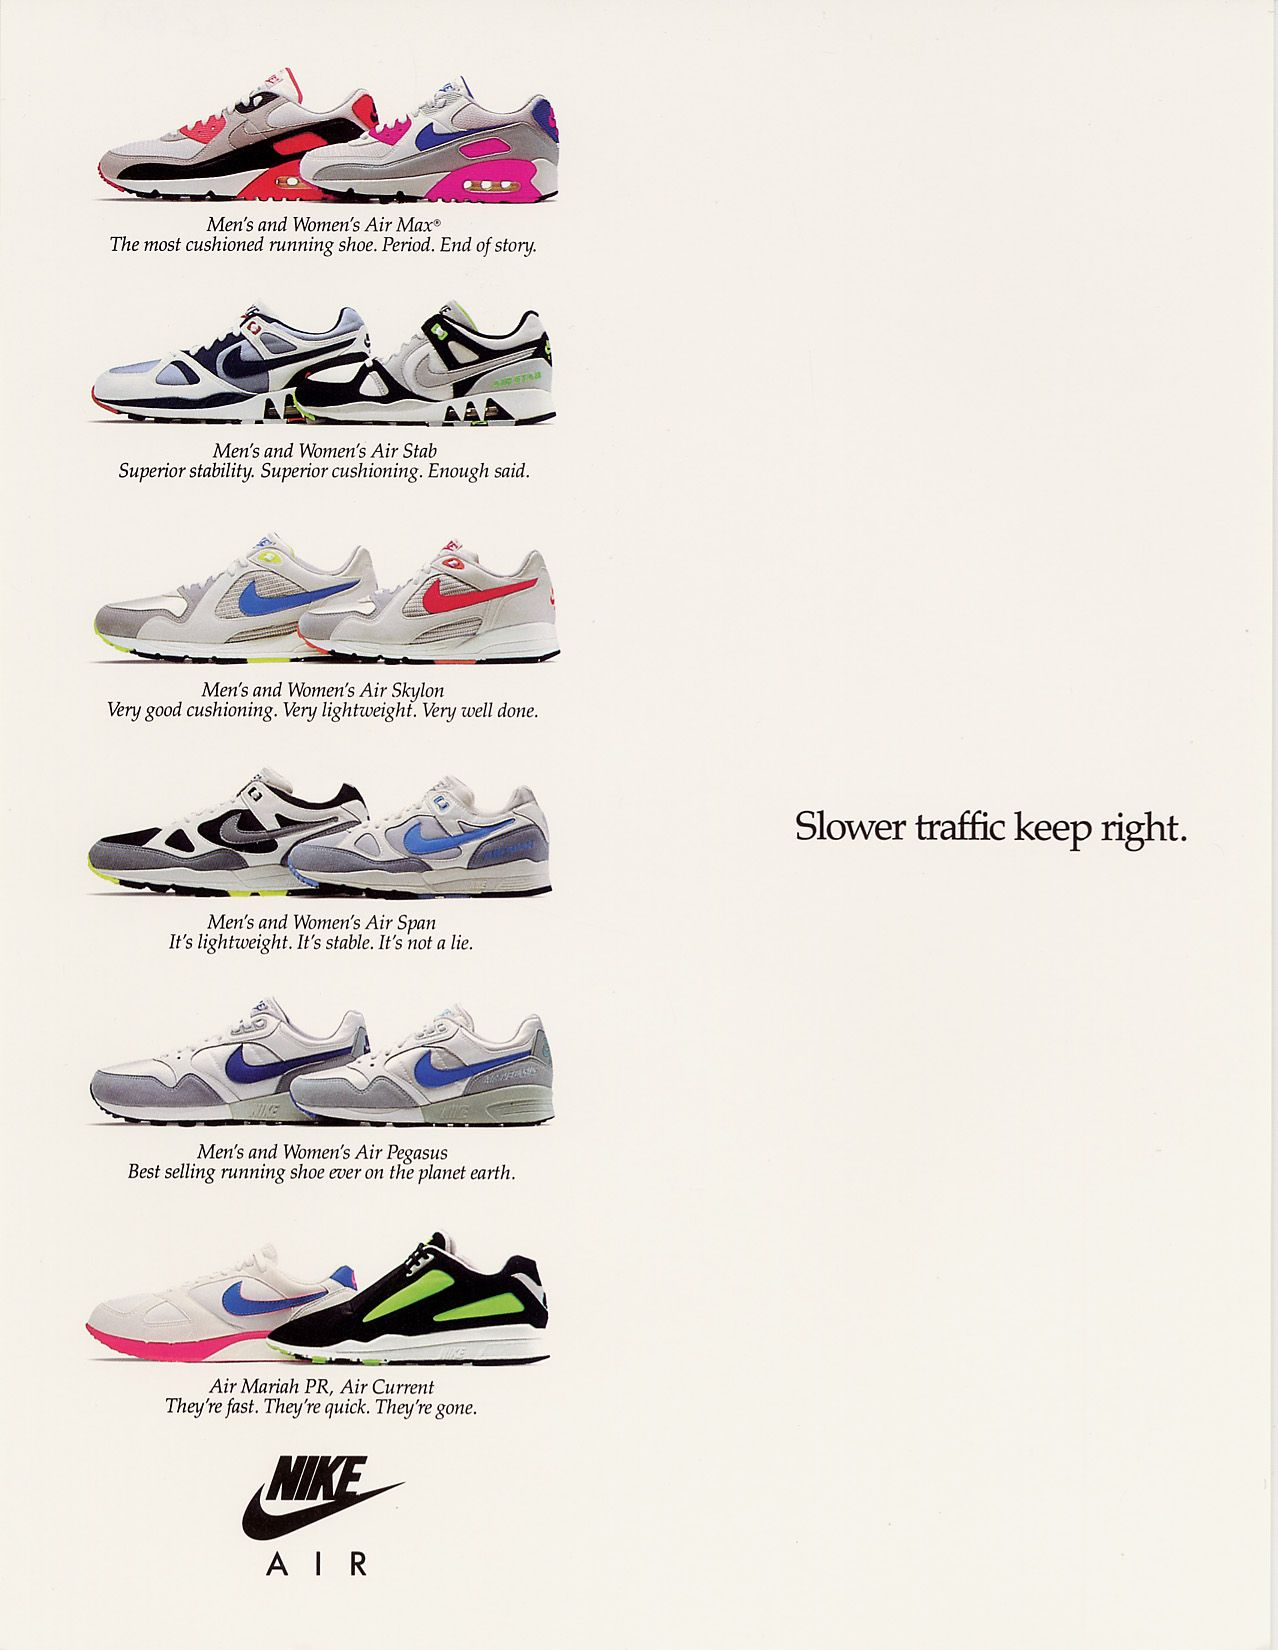 Advertisement Nike Runner1990Vintage Runner1990Vintage Air Nike Advert Advert Air mN8nv0Ow